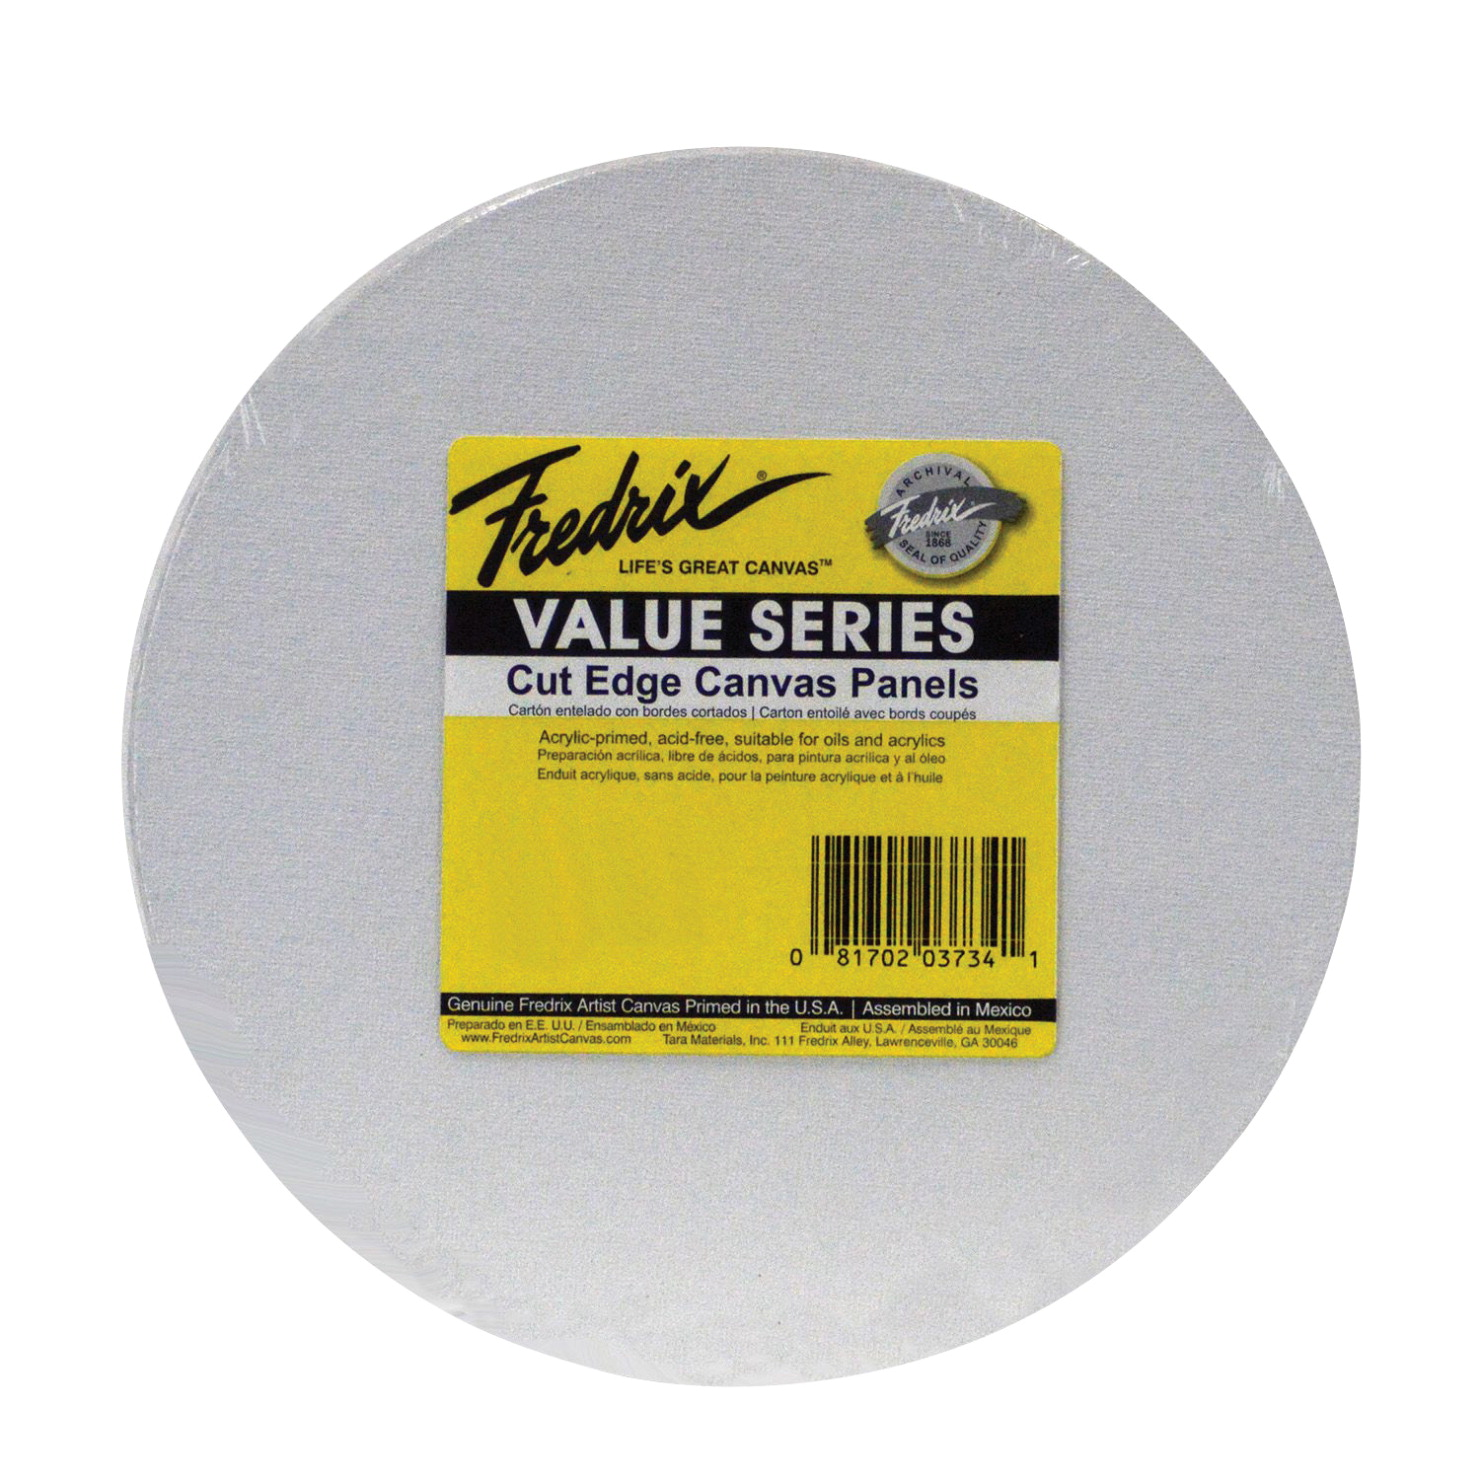 Fredrix Value Series Cut Edge Canvas Panel, Round, 8 Inches Round, White, Pack of 25